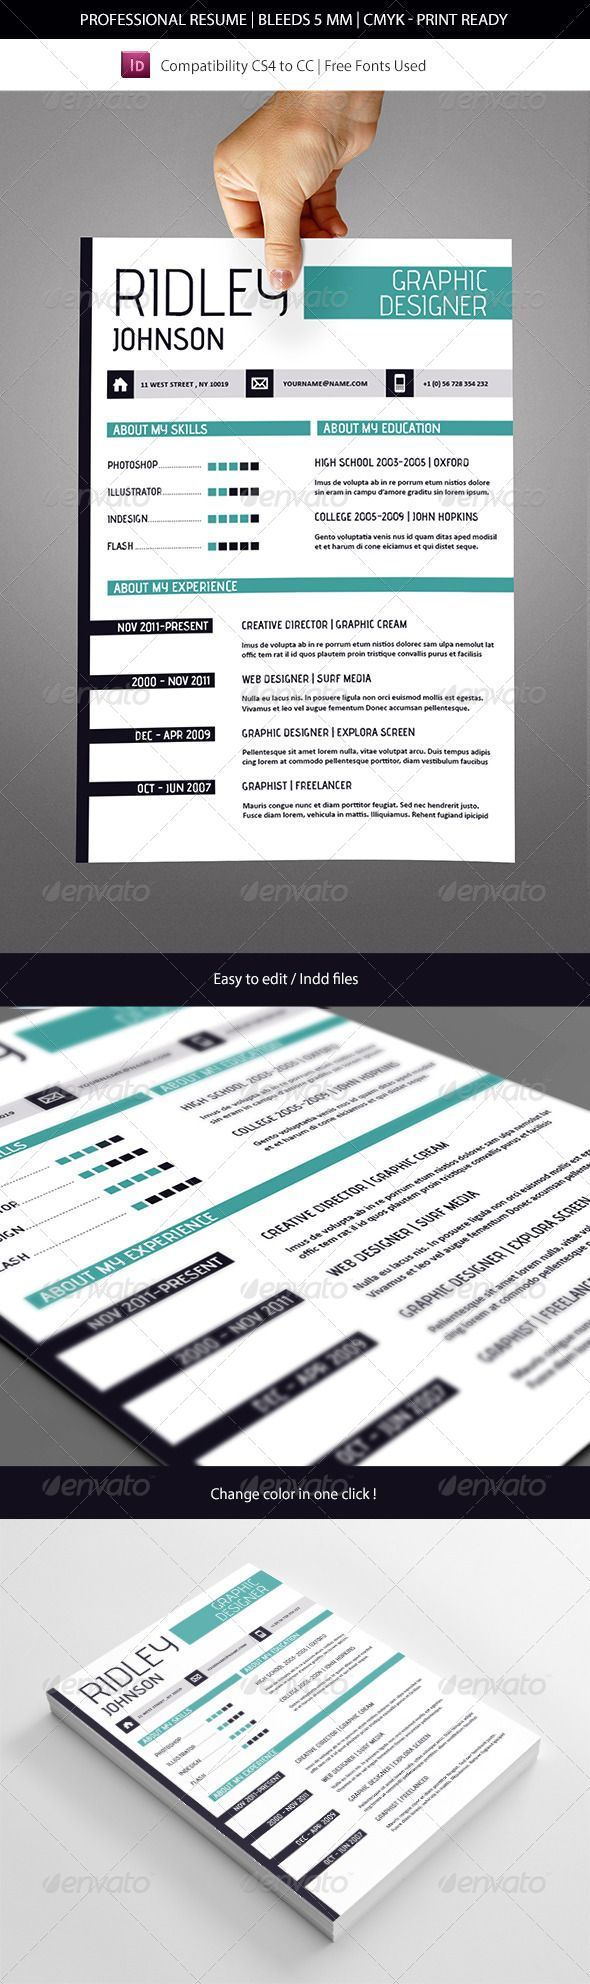 Creative Indesign Resume Template   Template, Creative and Graphic ...